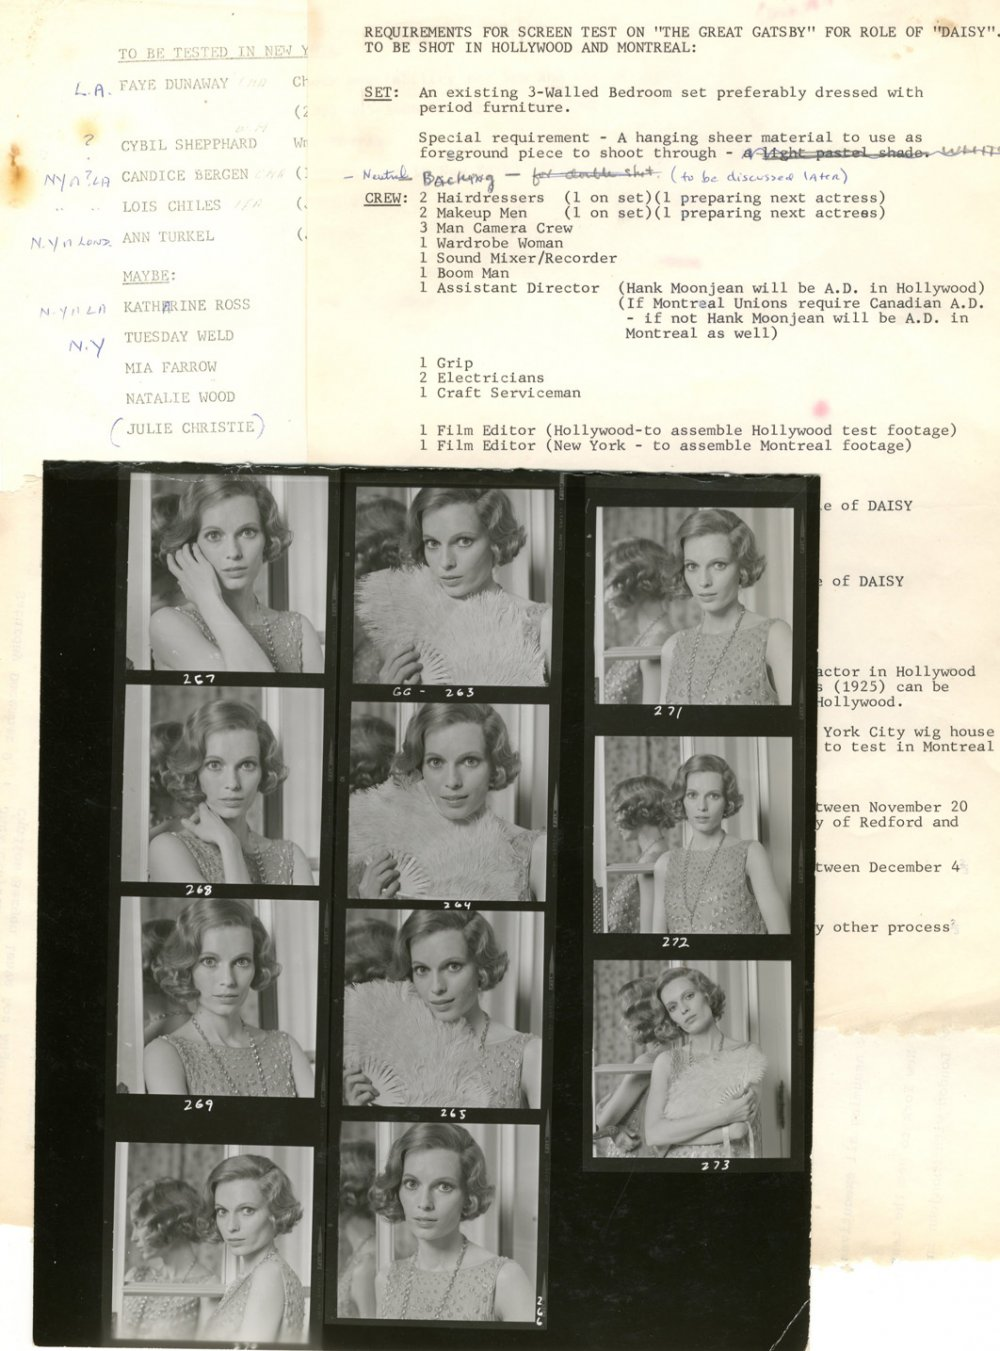 Casting schedule for the role of Daisy and contact prints of Mia Farrow